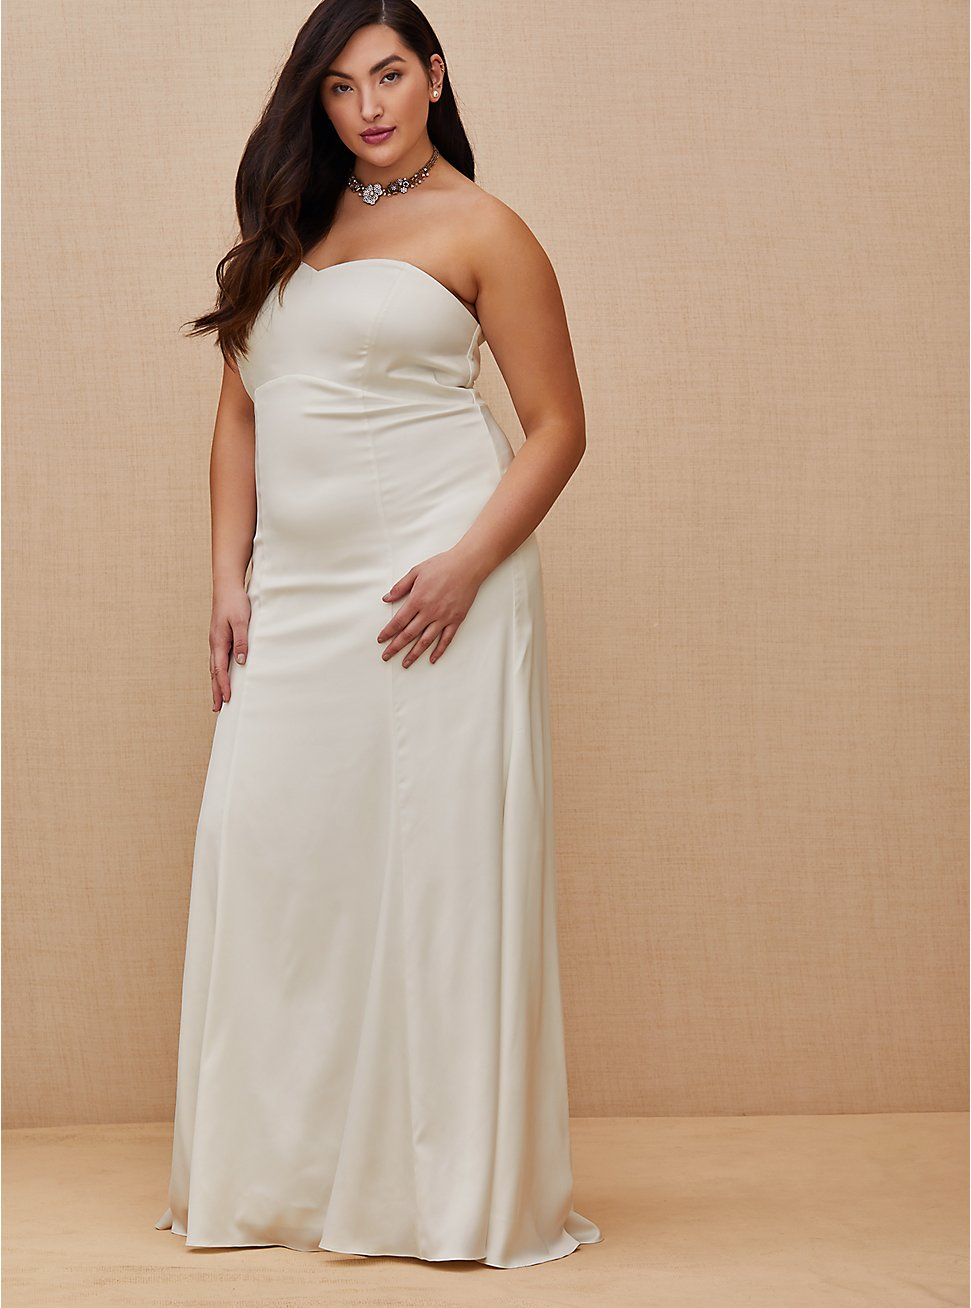 Ivory Satin Strapless Sweetheart Fit & Flare Wedding Dress, , fitModel1-hires